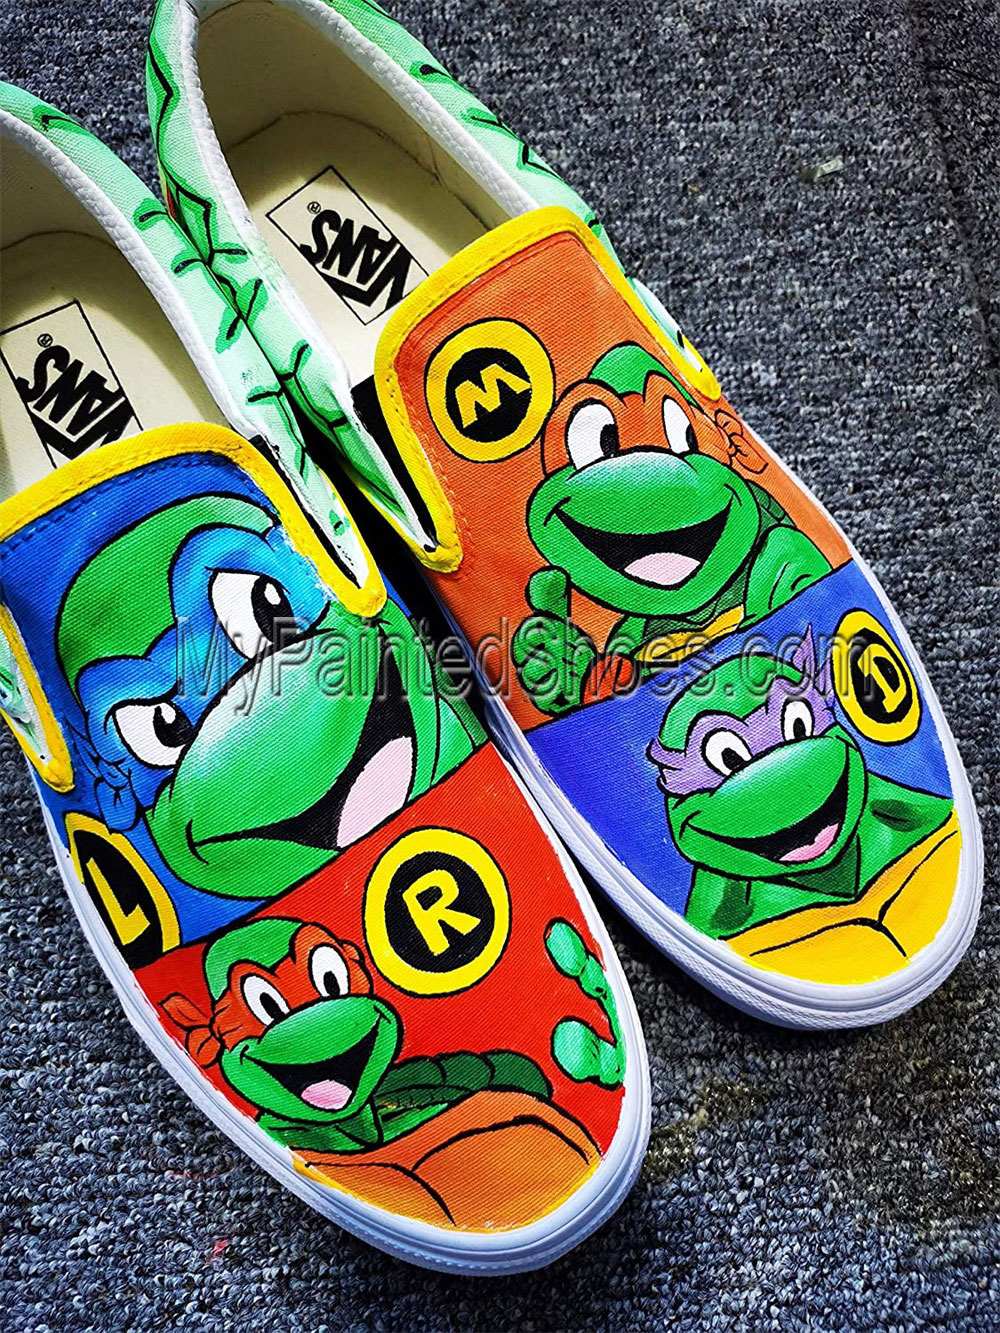 Ninja Turtles Vans Shoes Custom Hand Painted Shoes Custom Vans C-1